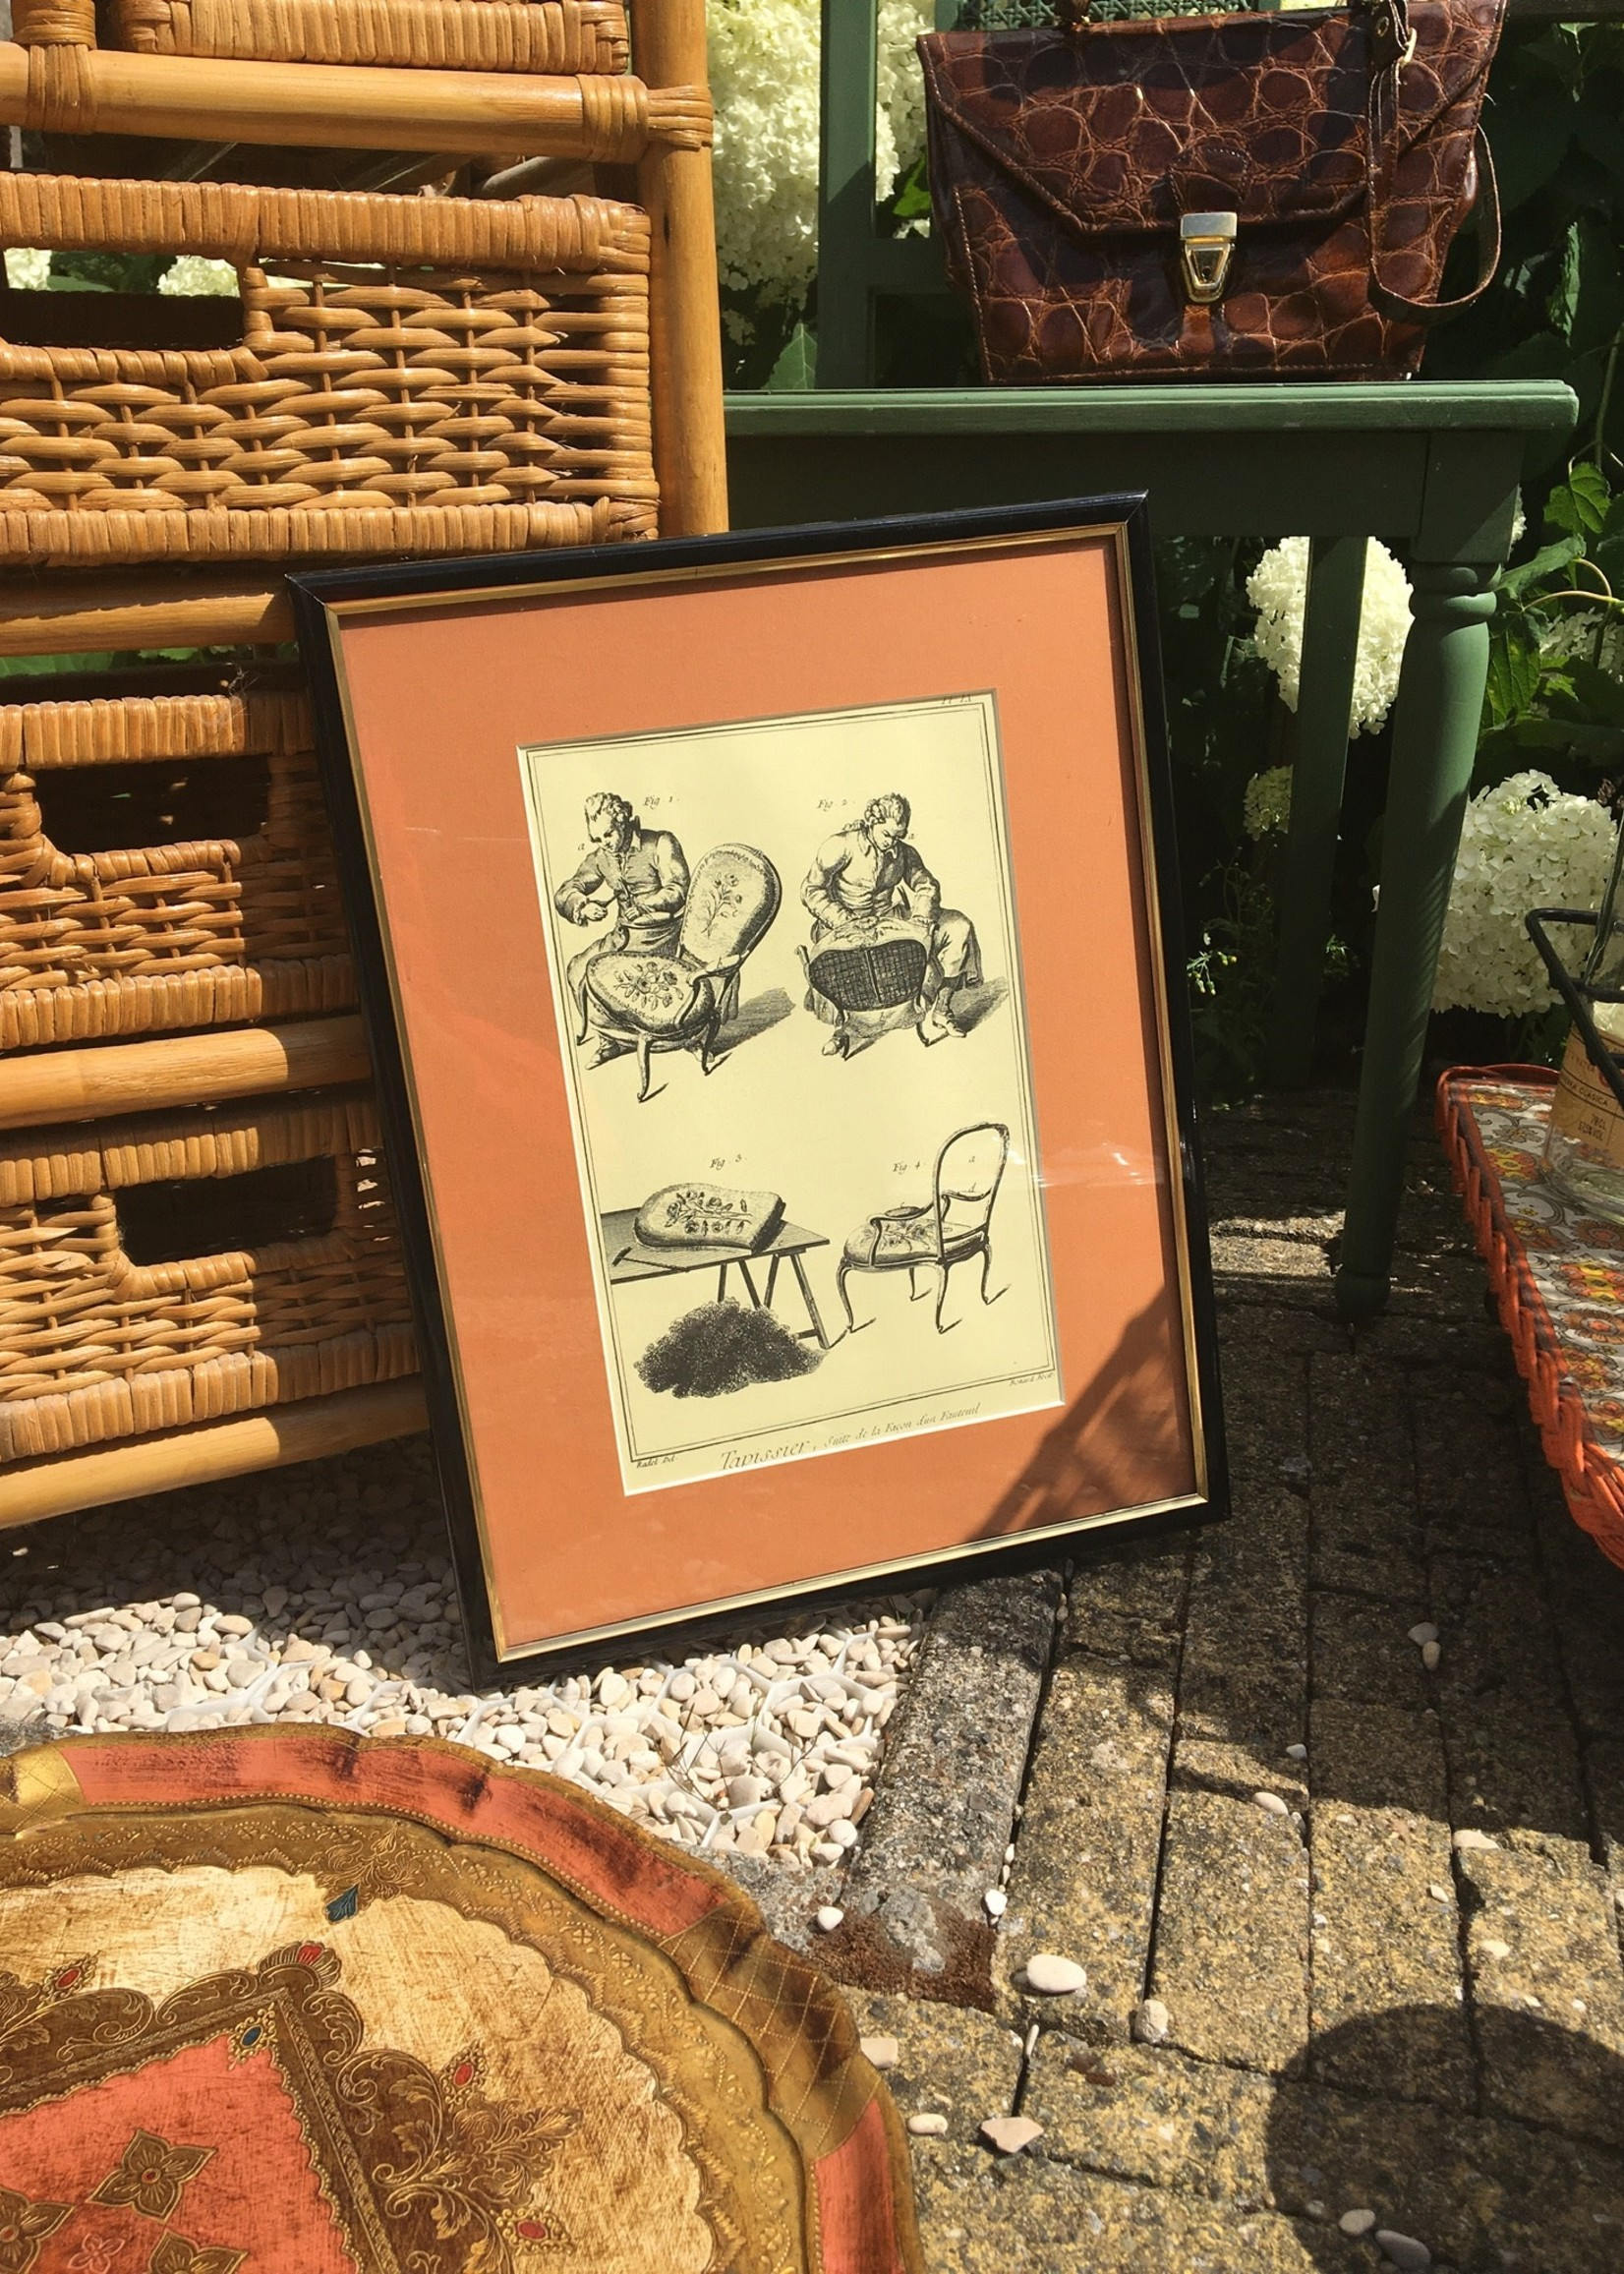 Furniture worker engraving in frame with peach coloured contour